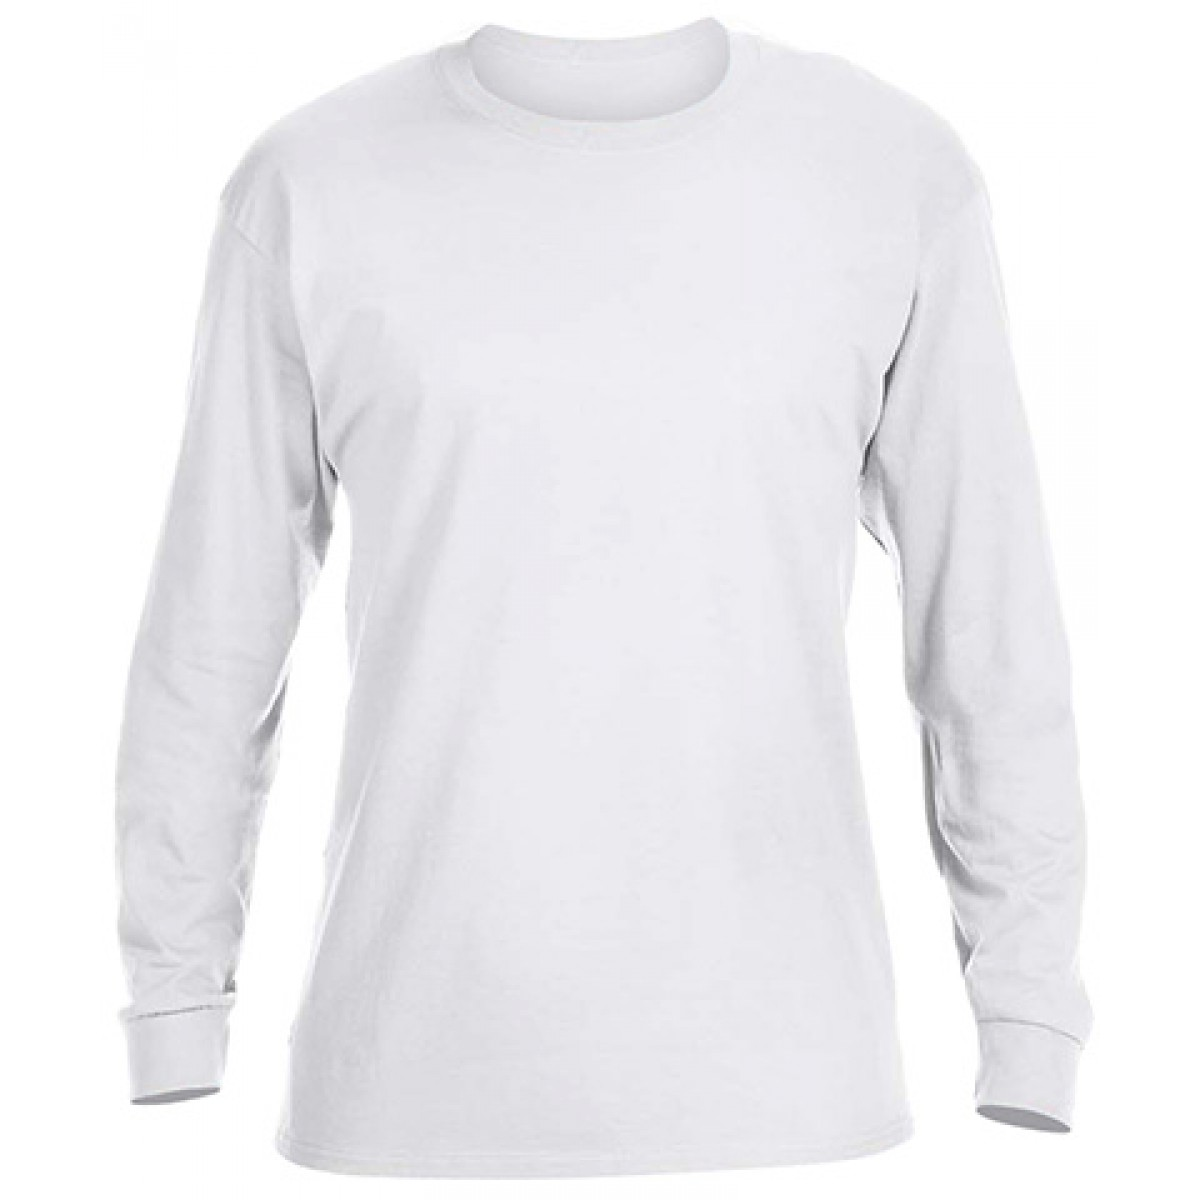 Basic Long Sleeve Crew Neck -White-YS